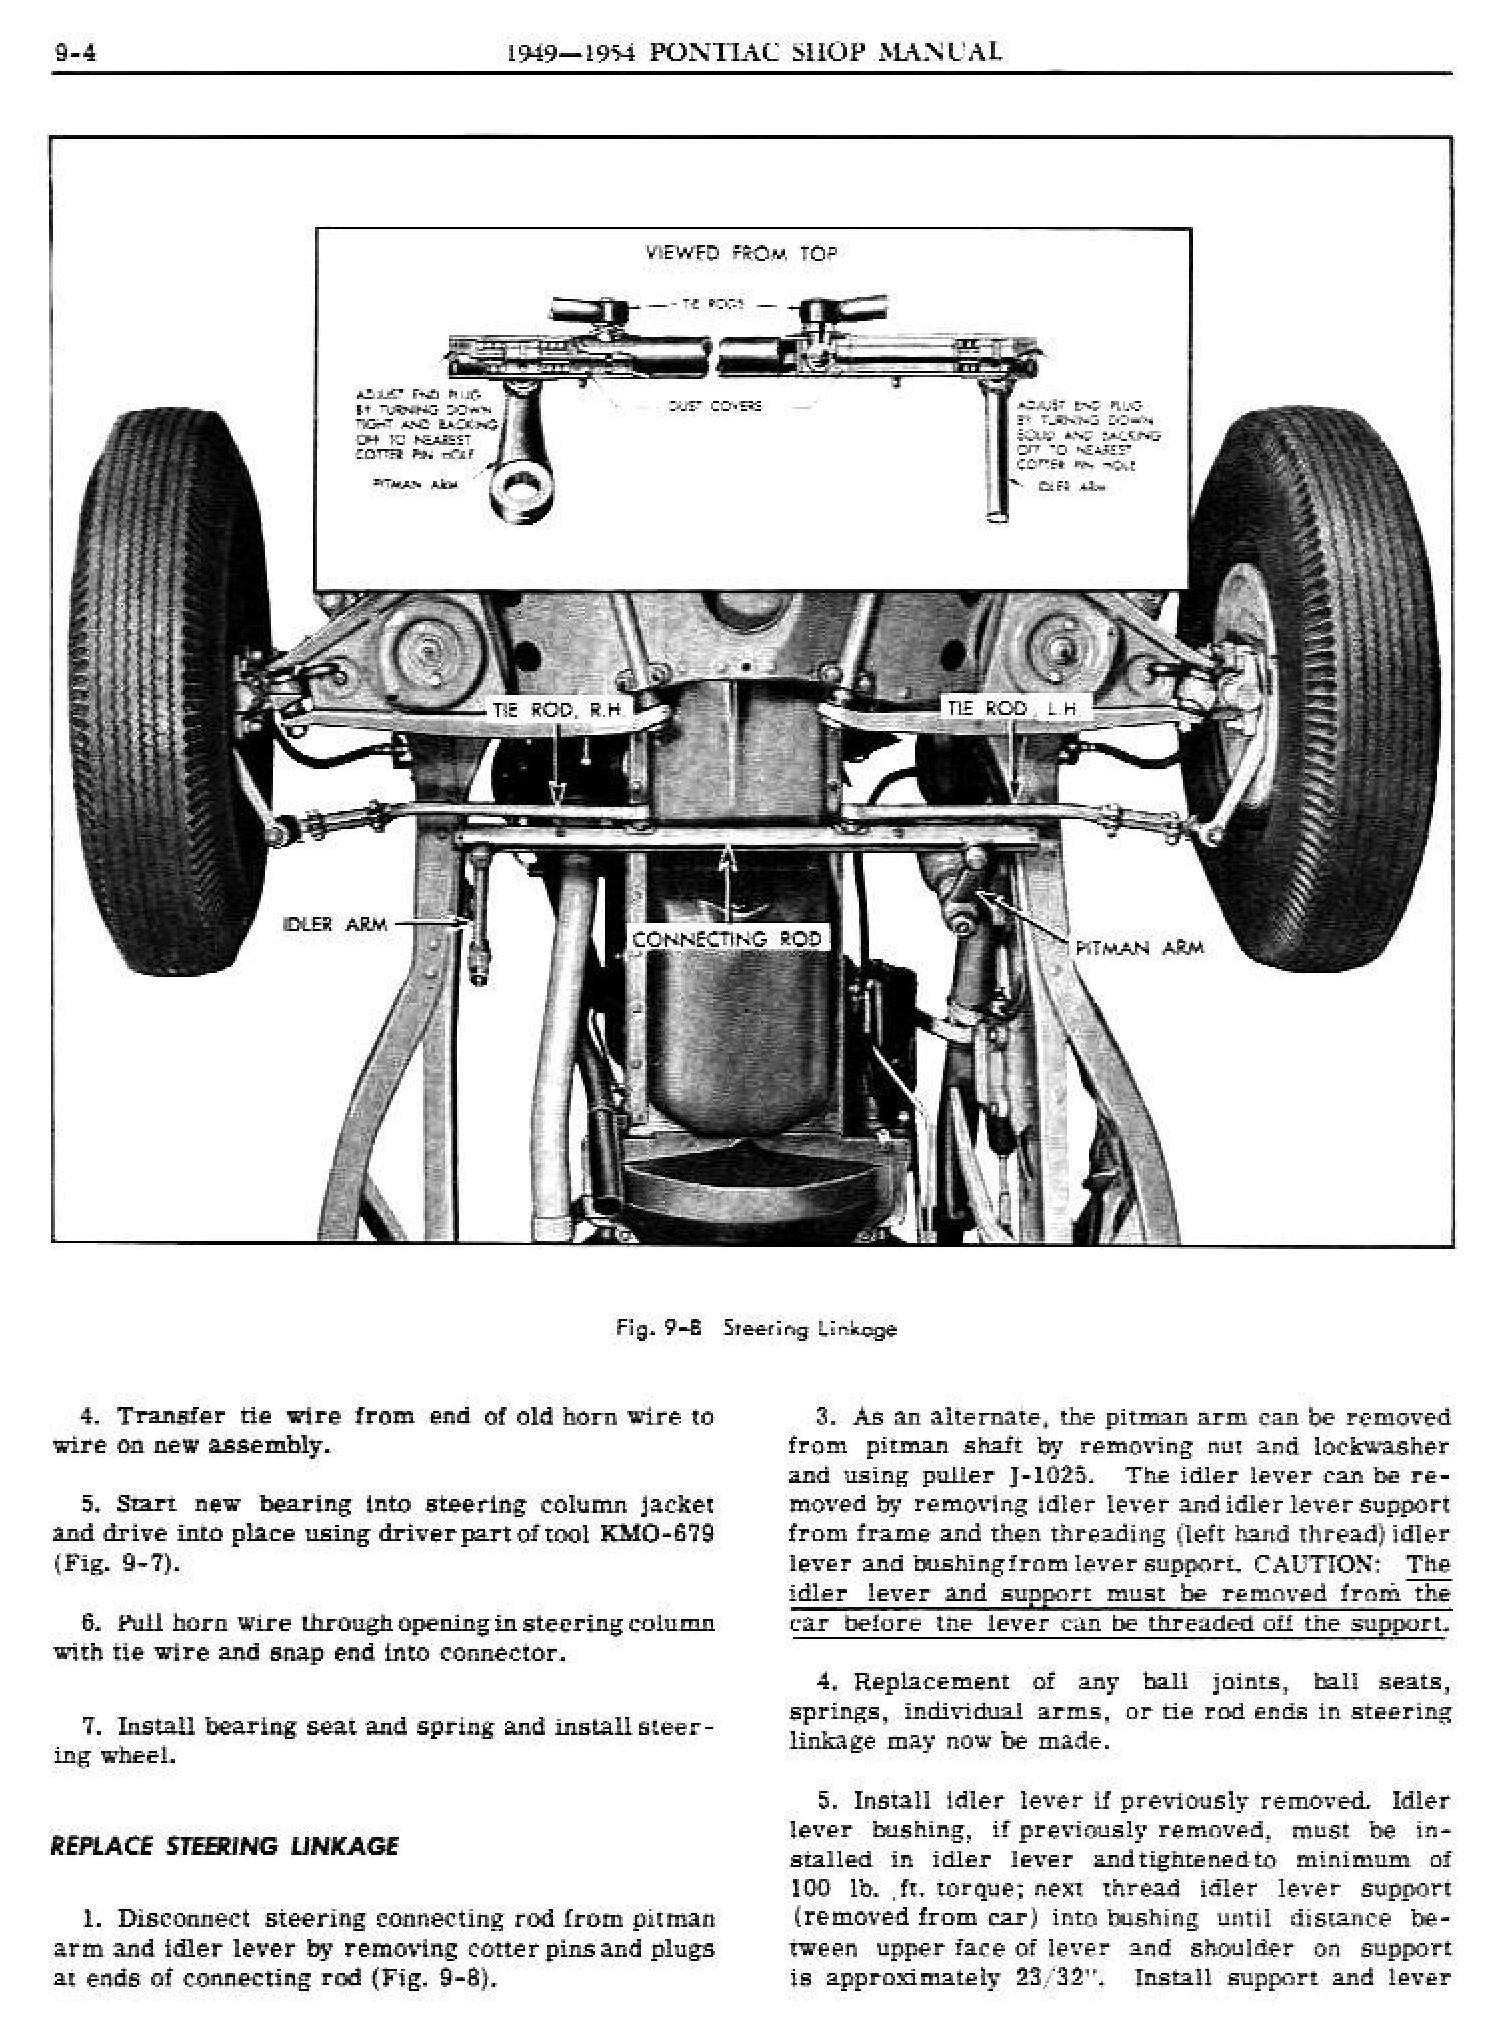 1949 Pontiac Shop Manual- Steering Page 4 of 31